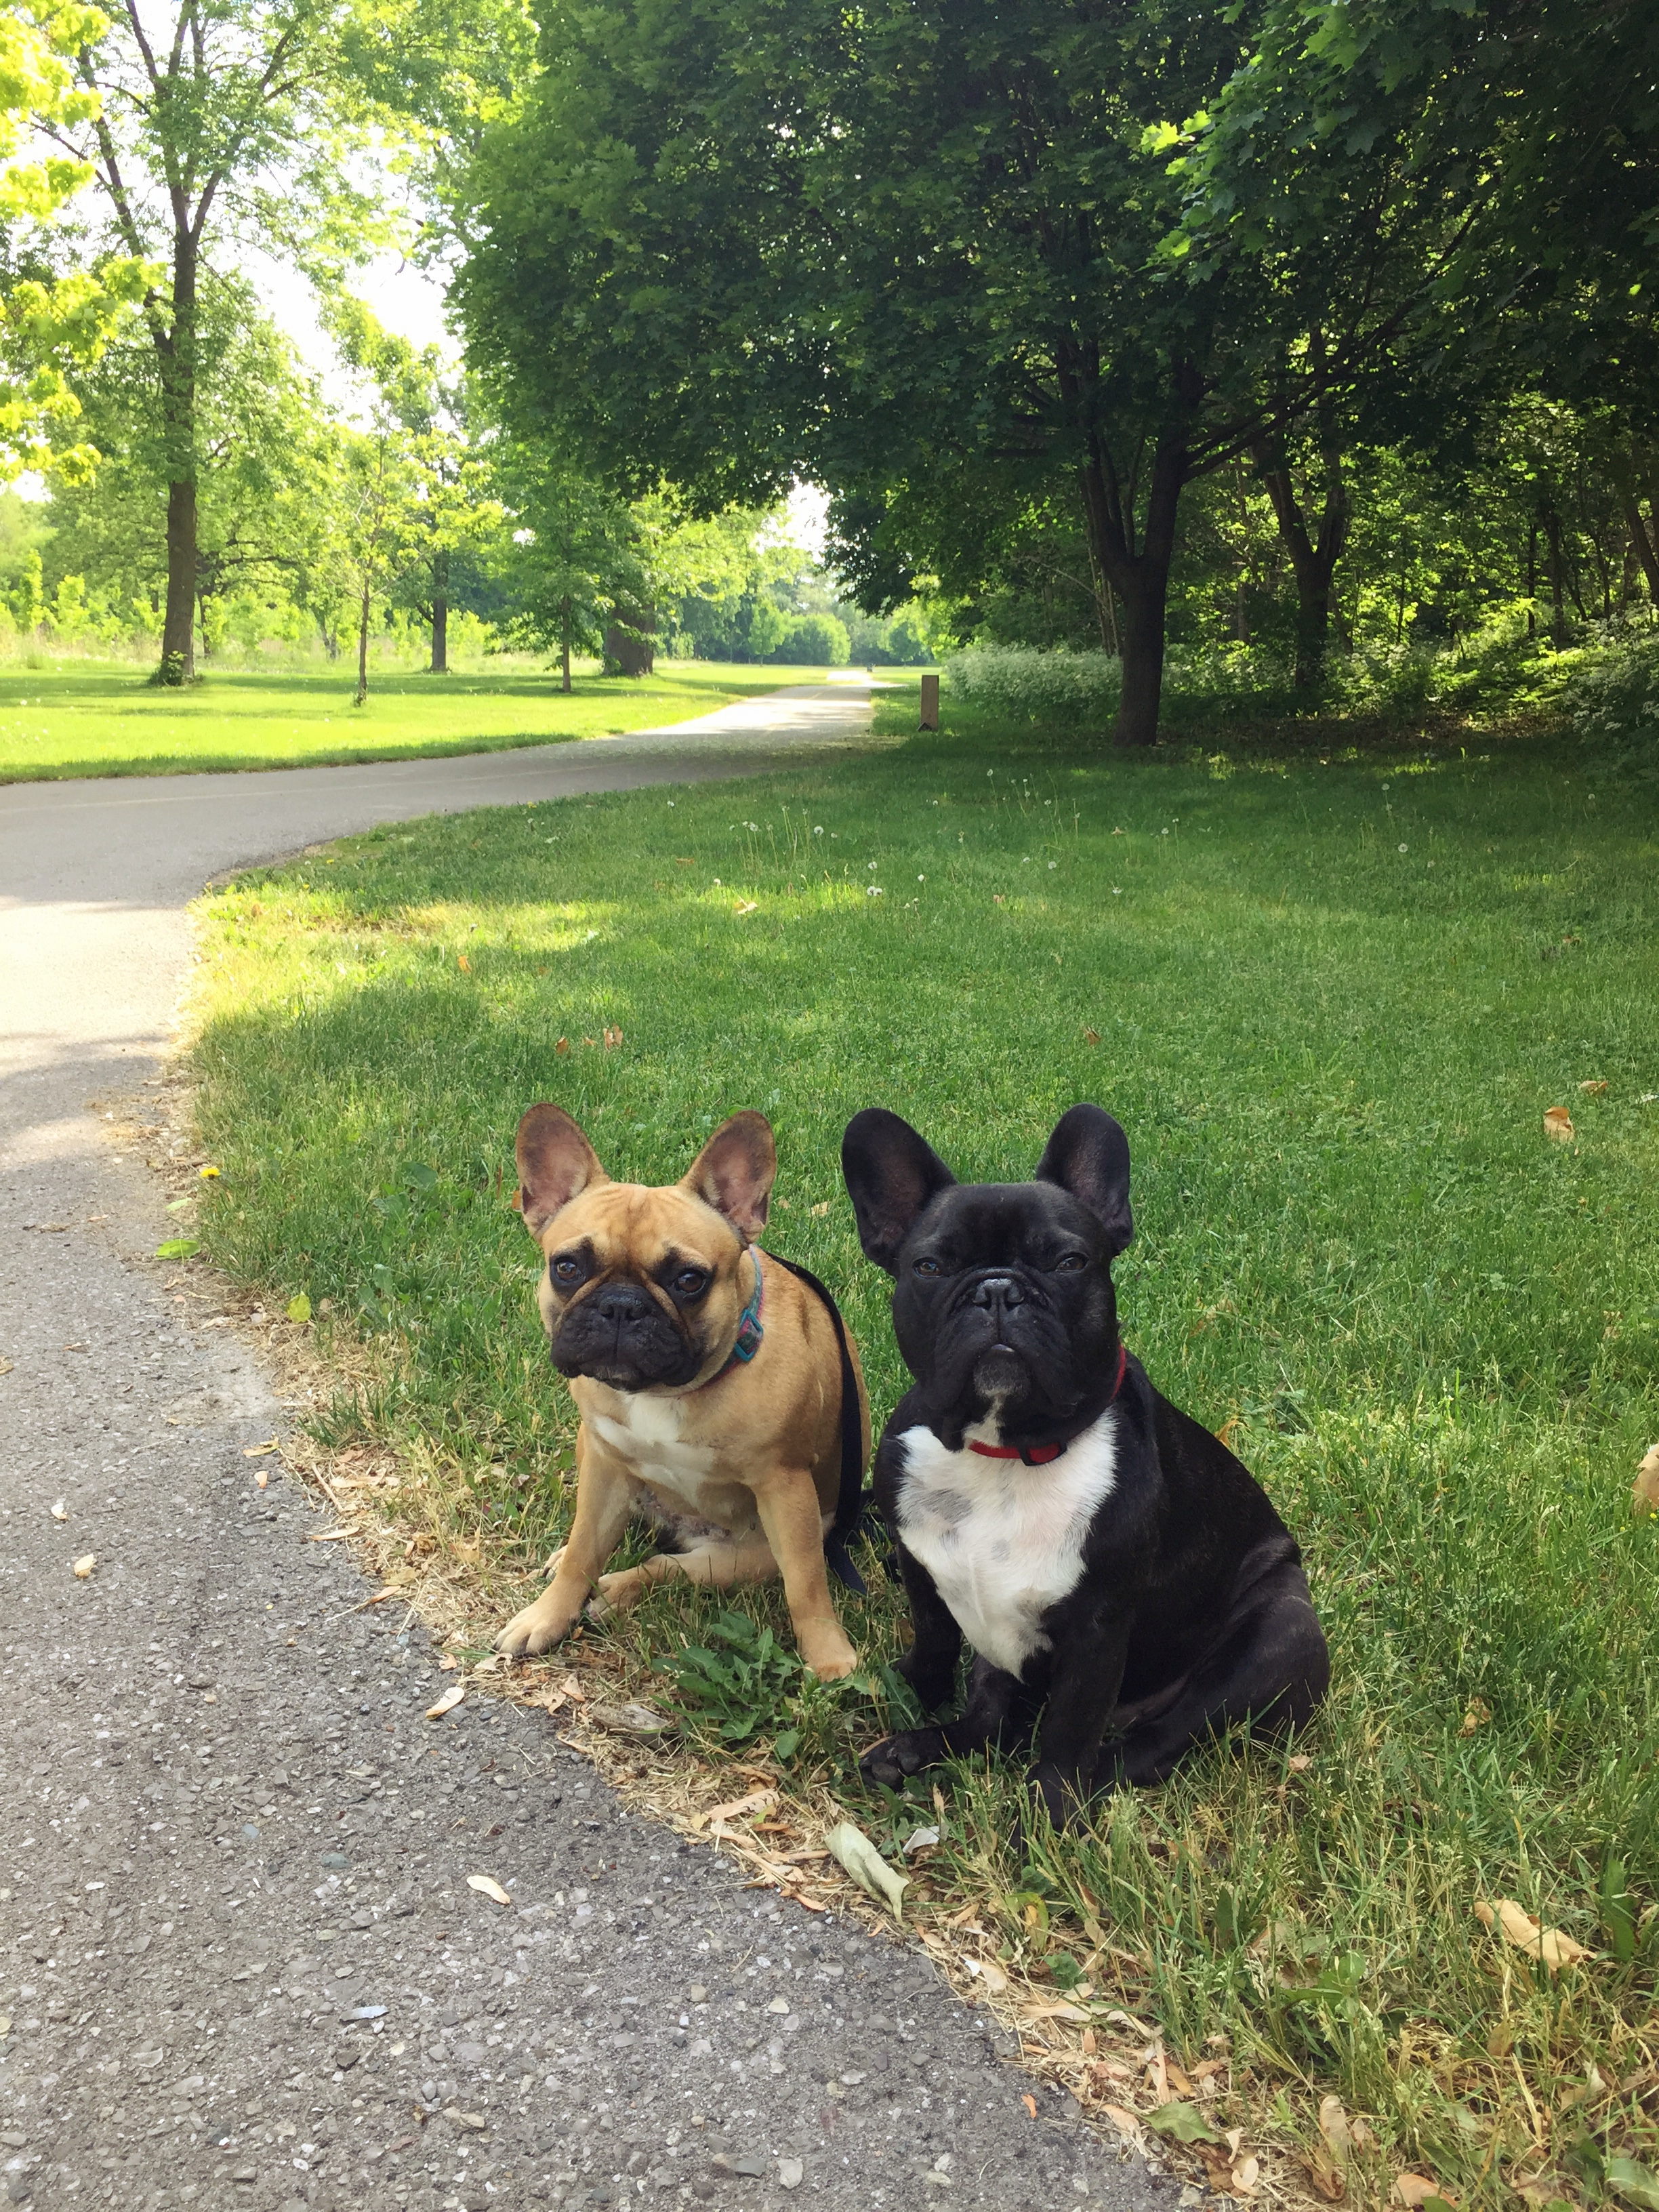 Me plus Mirabelle are saying GOODMORNINGTIMES at Watson Street Park, guys!! We go there lots and stuff!!